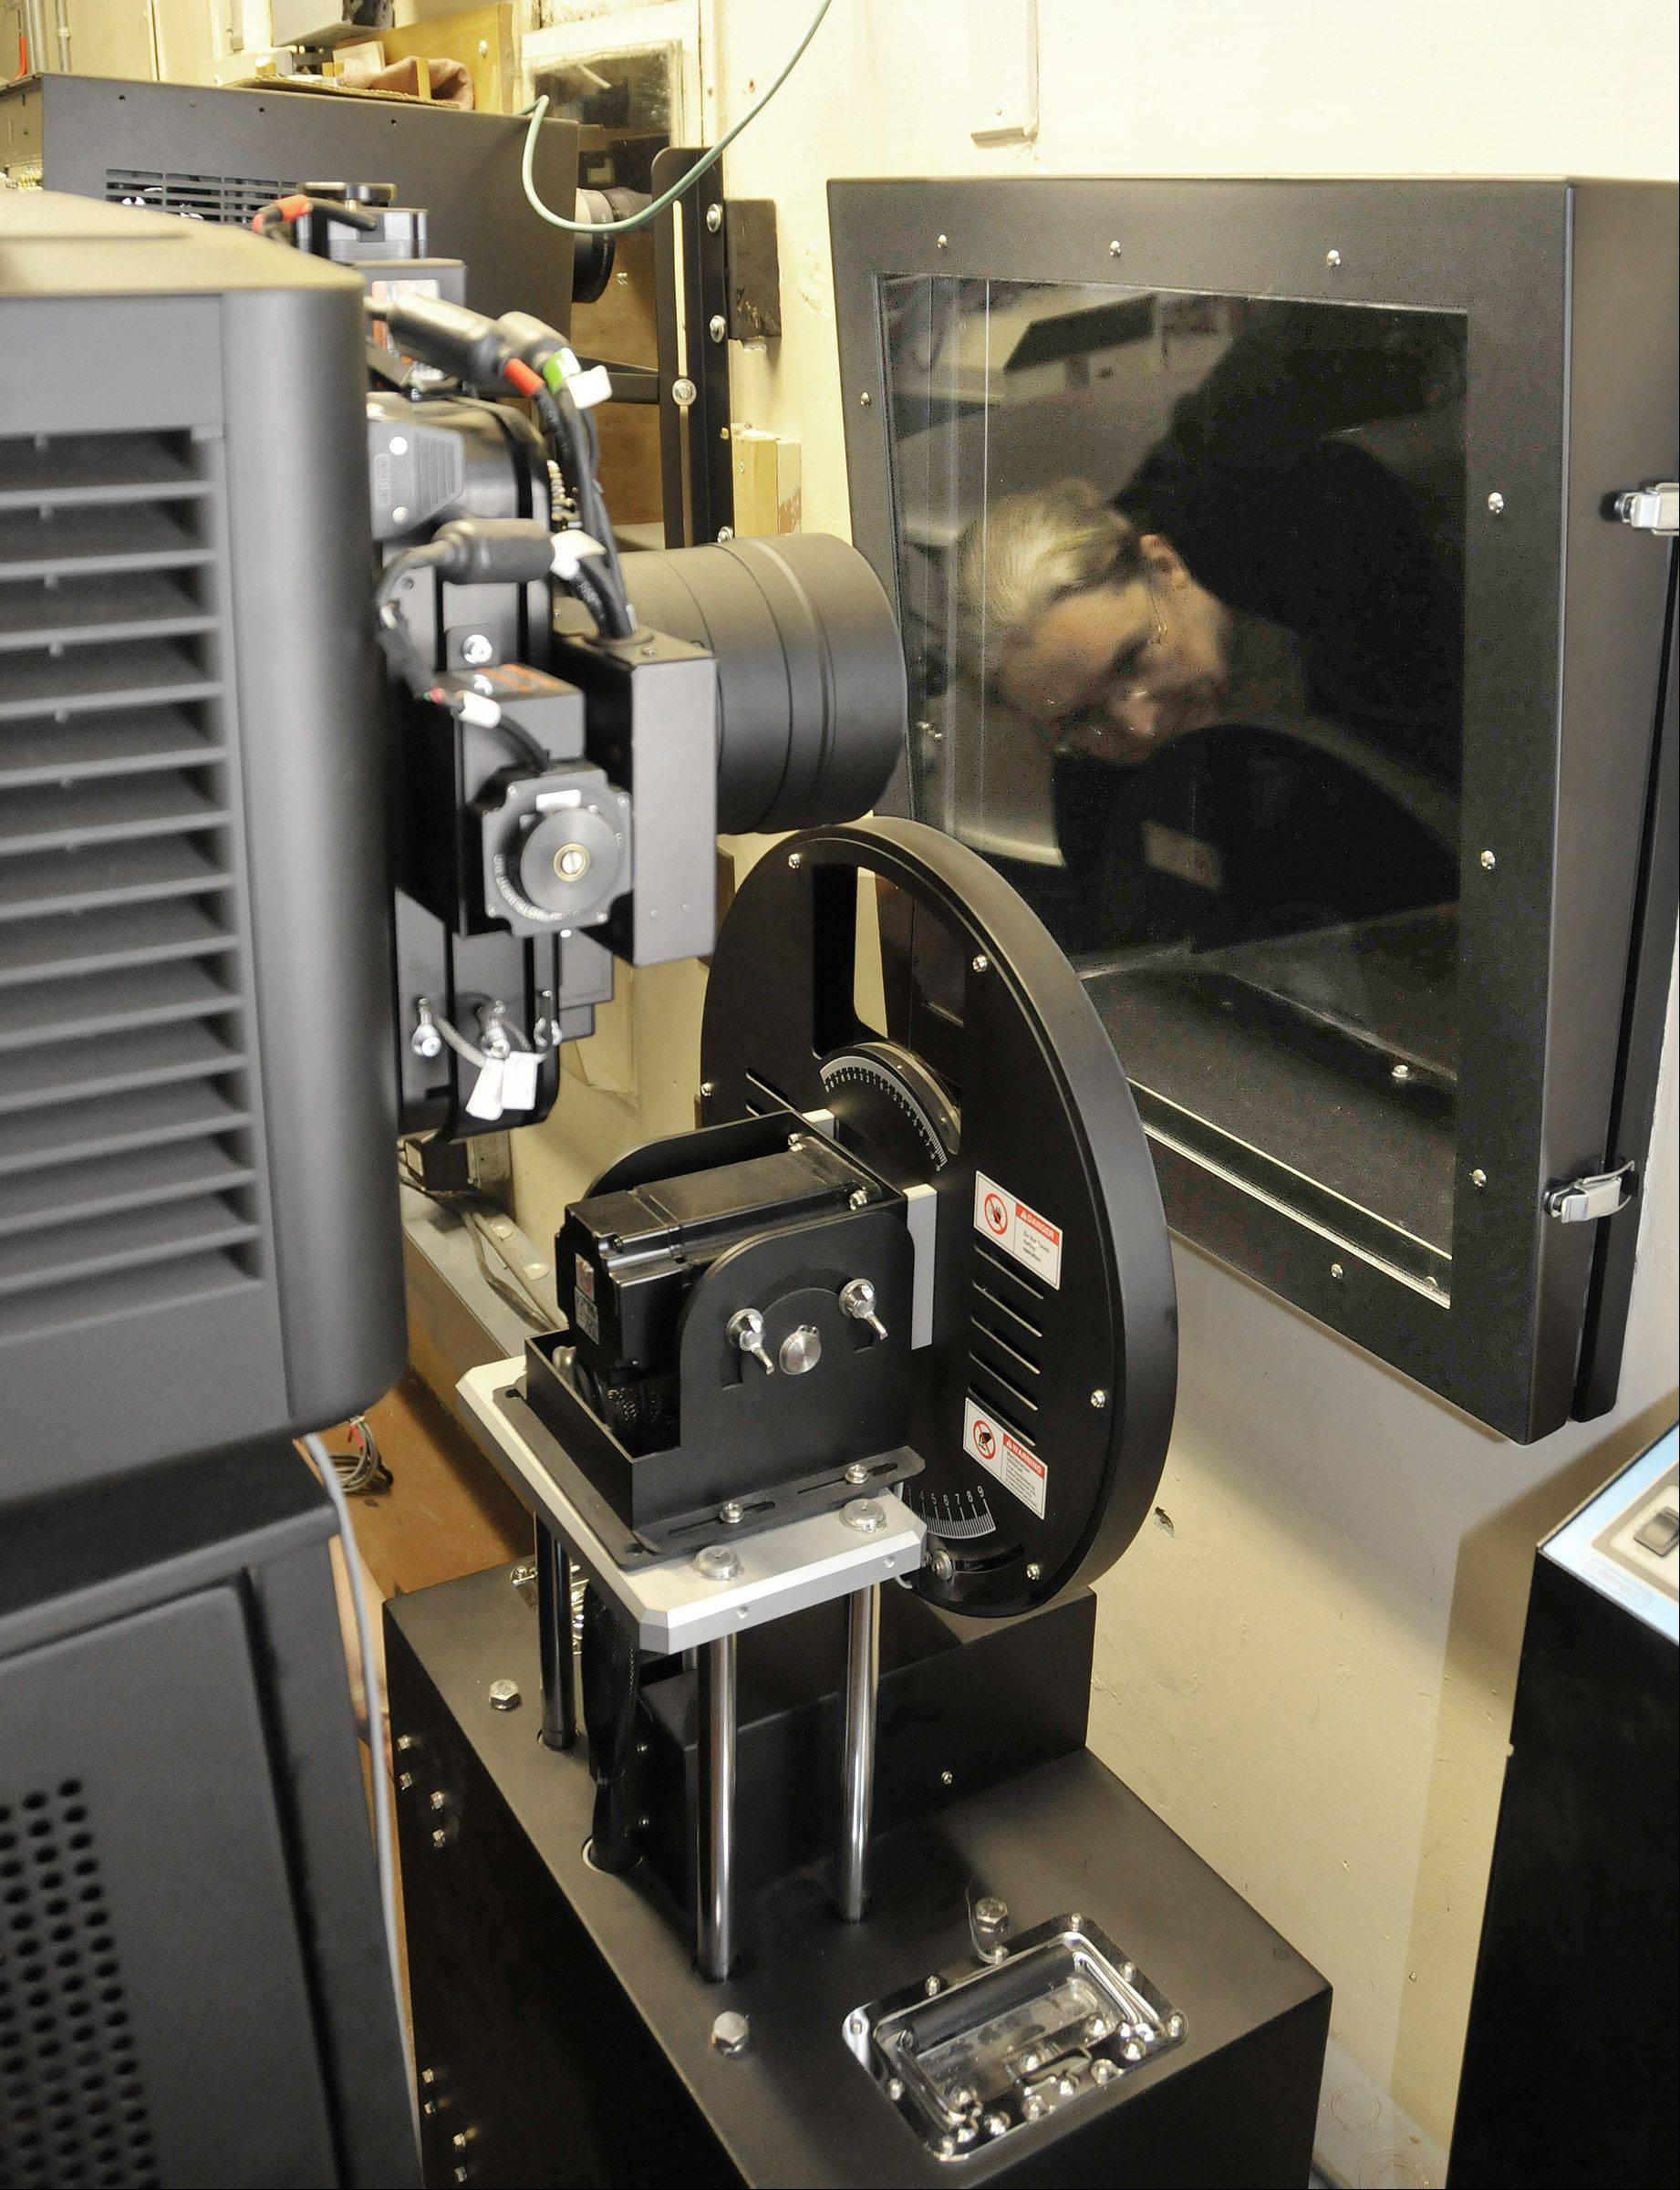 A new projector at The Tivoli in Downers Grove uses no film. In the projection booth, Tivoli General Manager Linda Smith, visible reflected in the glass, moves the round 3-D filter unit into position in front of the digital projector's lens.